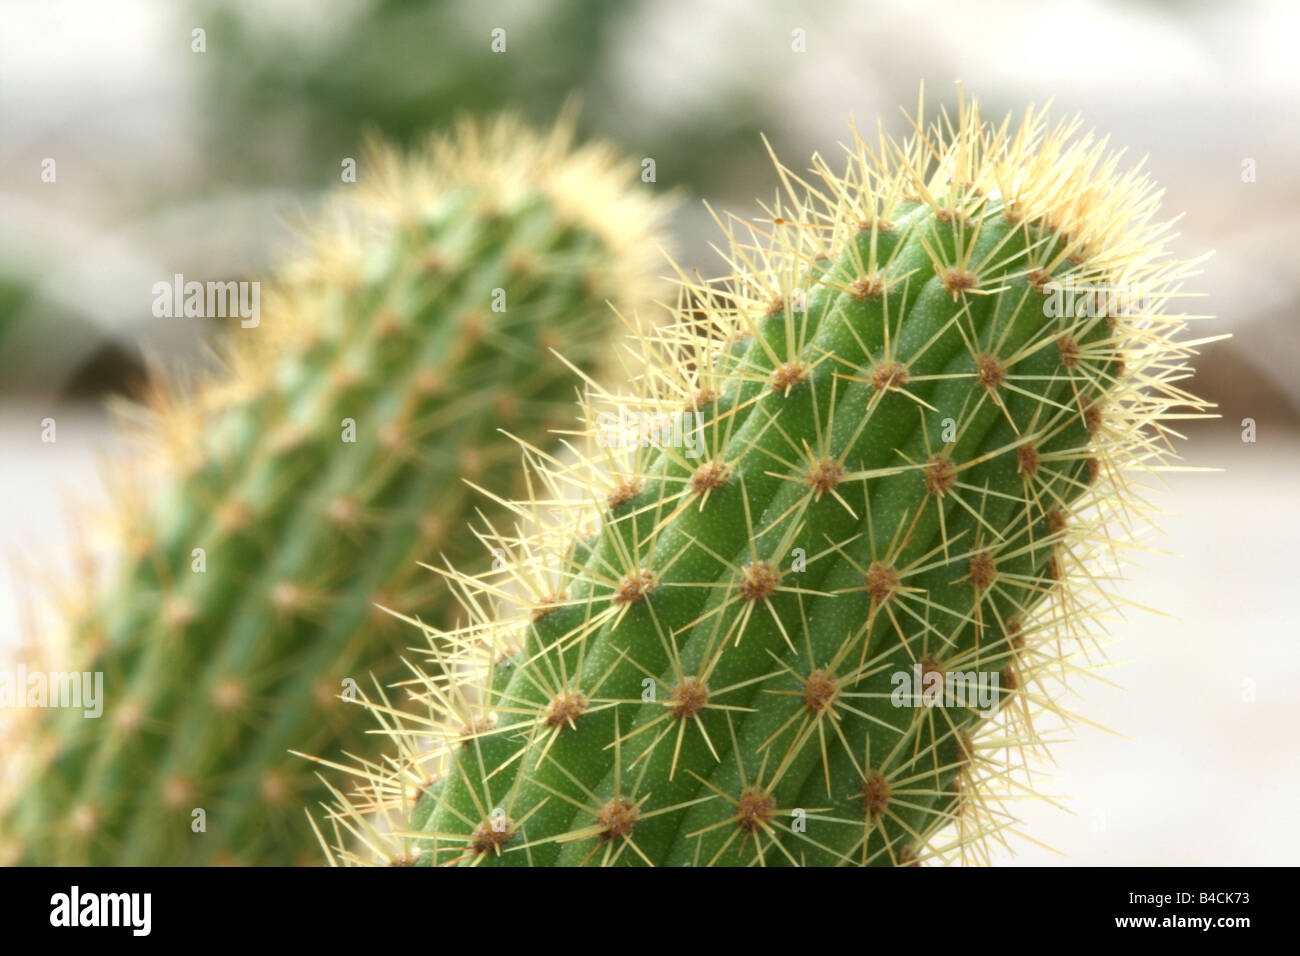 small cactus closeup with dof background nature and plants - Stock Image